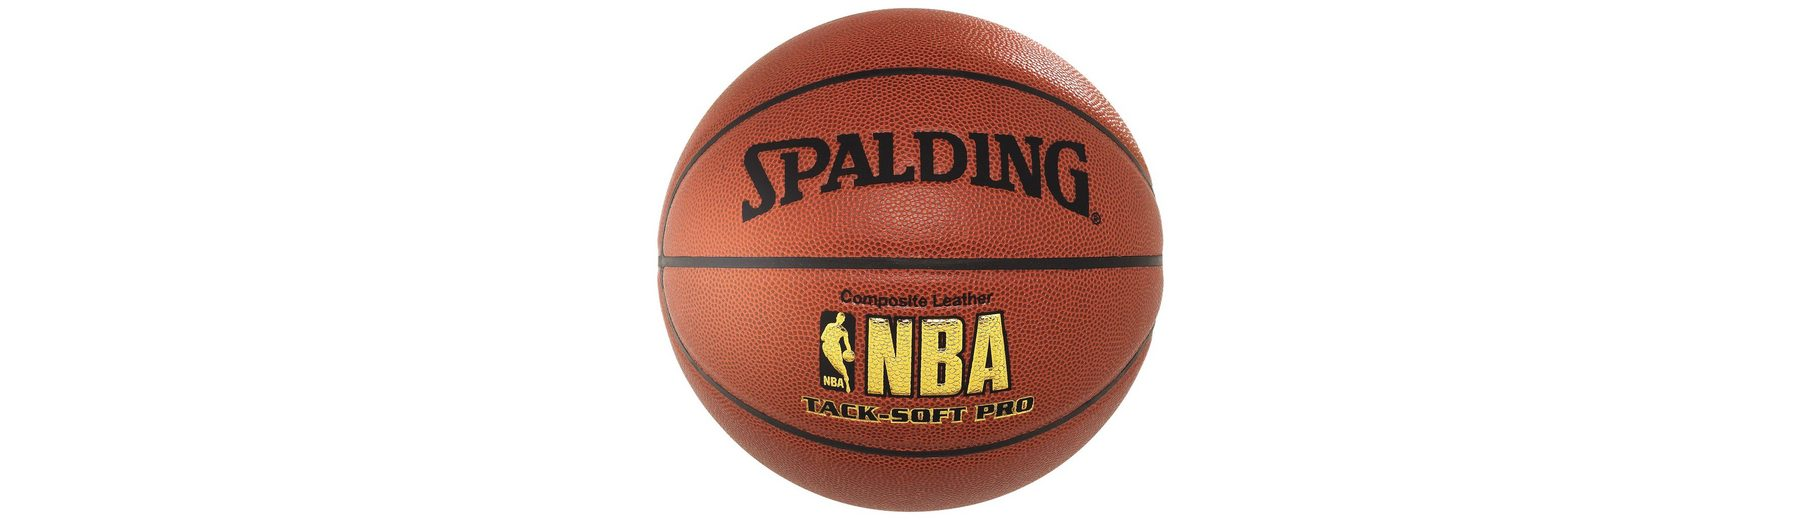 SPALDING NBA Tack-Soft Pro (74-190Z) Basketball